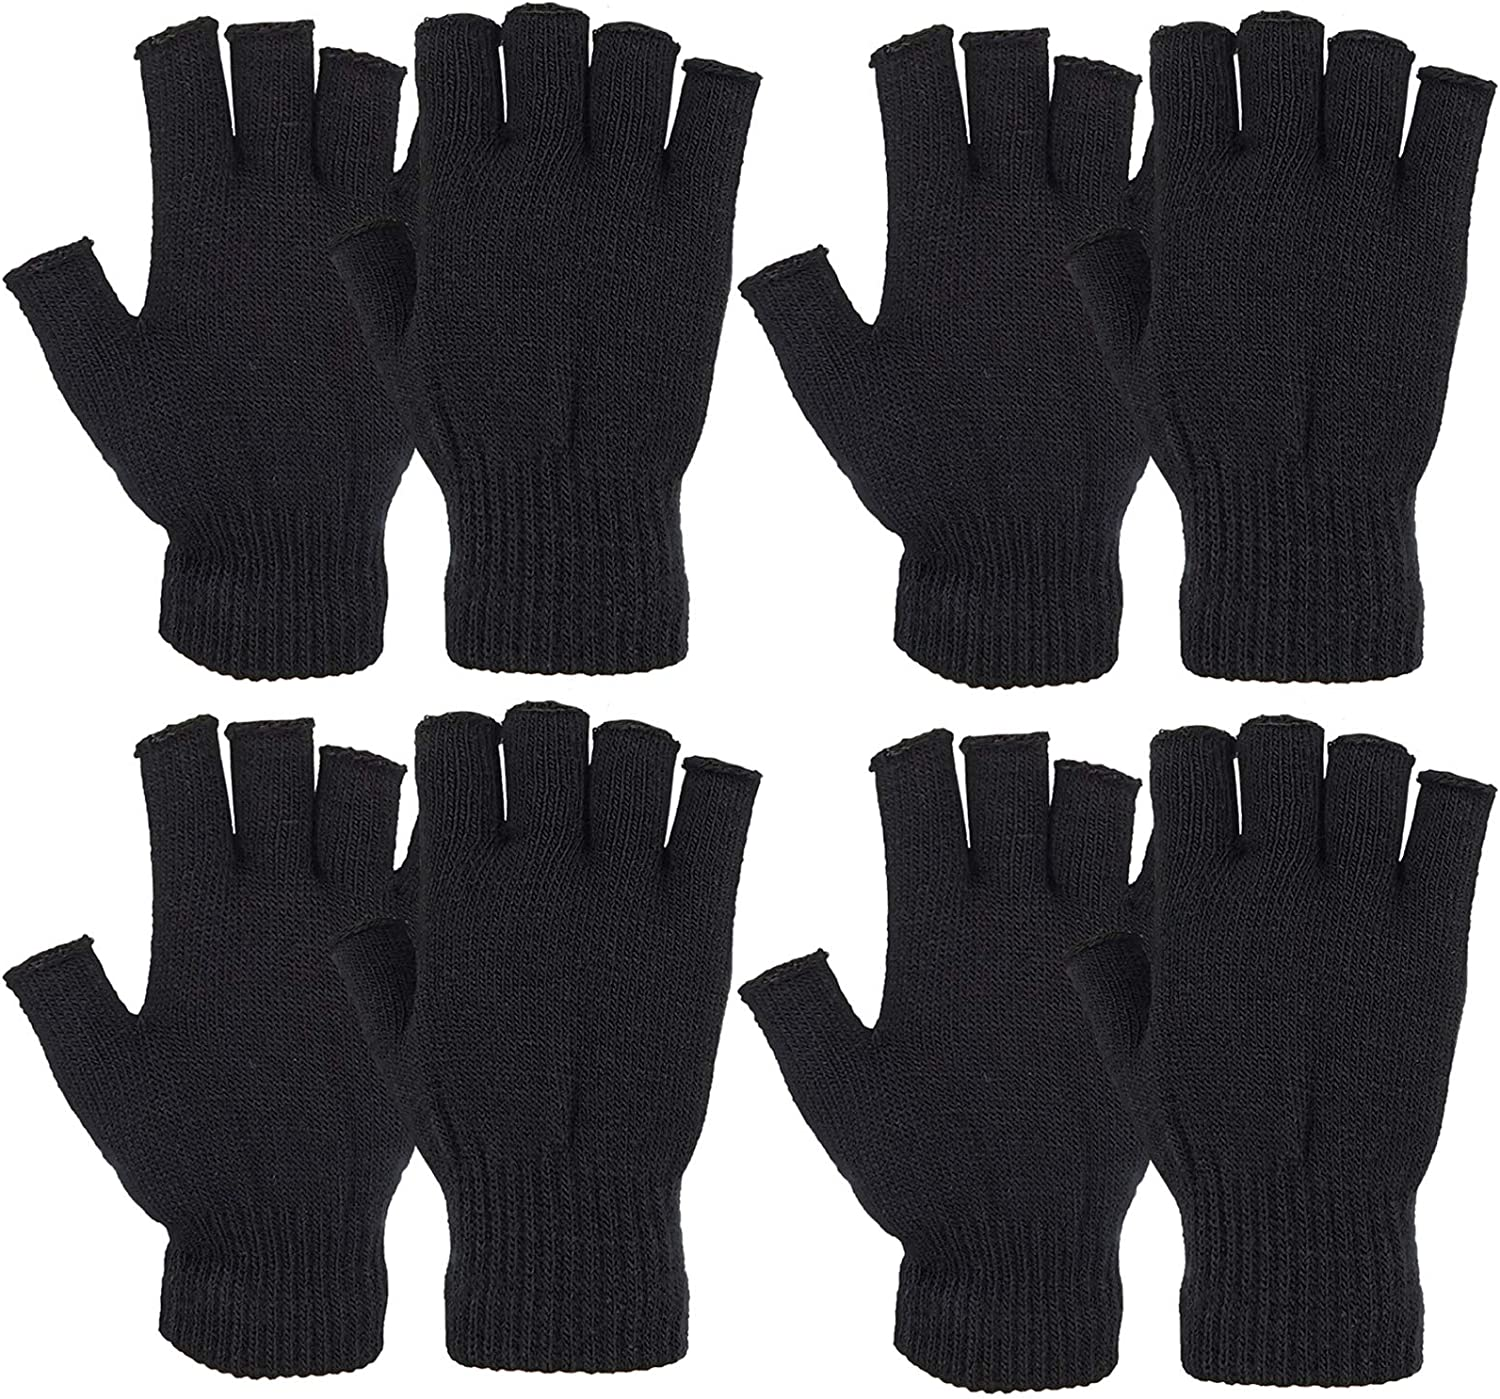 Outrip Womens Fingerless Gloves Winter Warm Knit Thumb Hole Mittens Arm Warmers